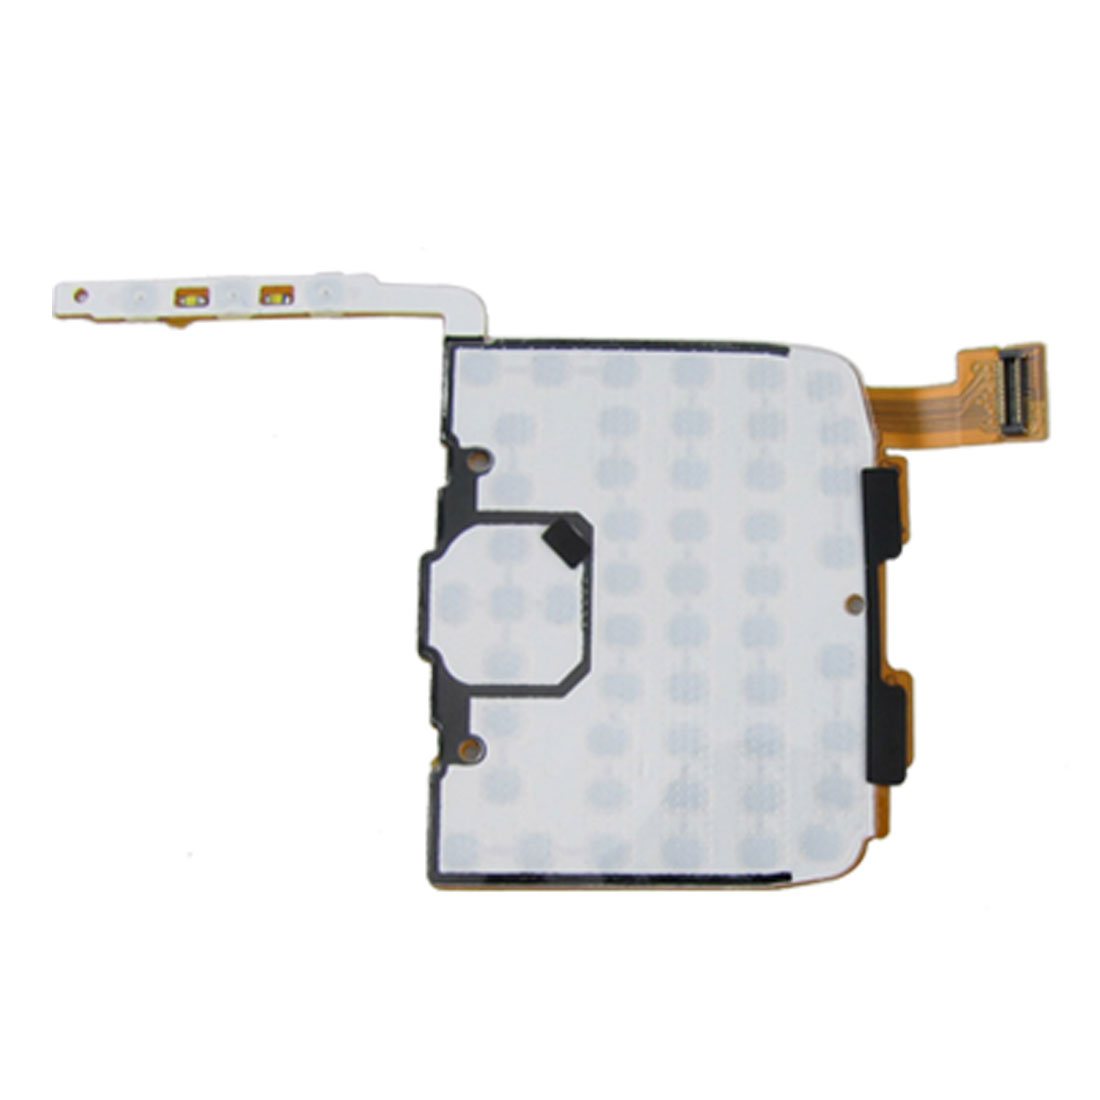 Repair Parts Keypad Keyboard Membrane Flex Cable for Nokia E71